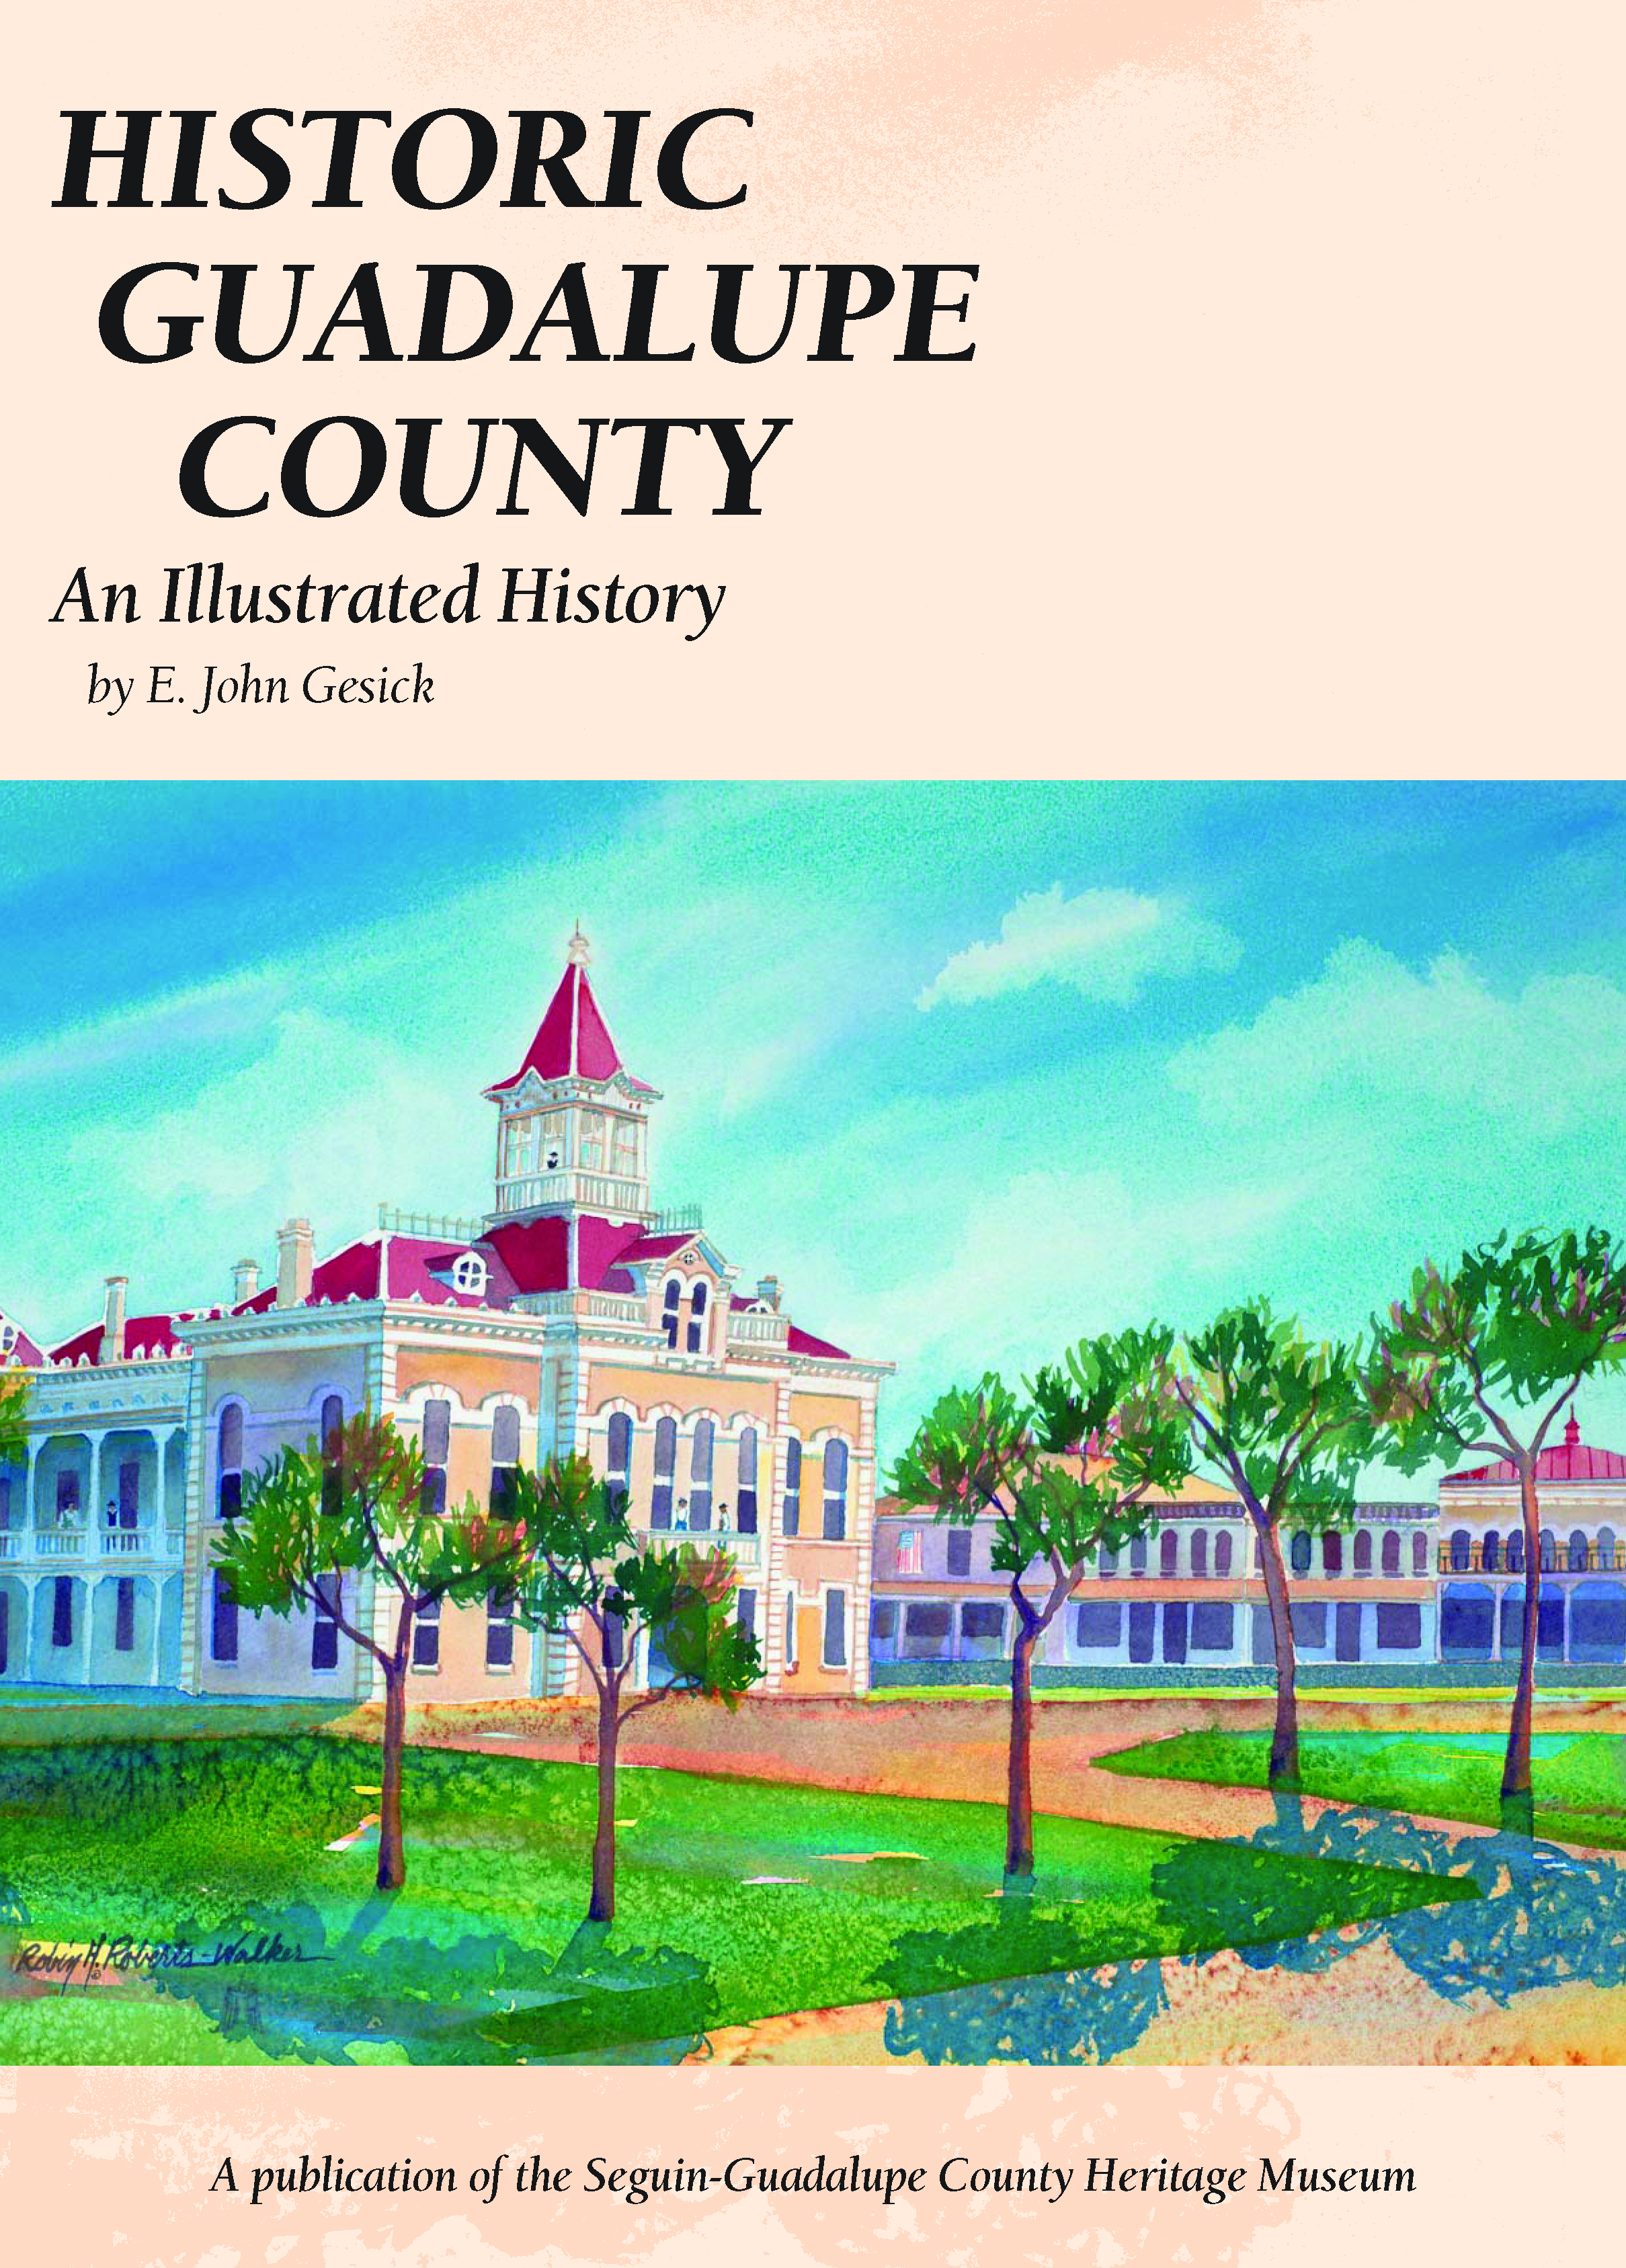 Historic Guadalupe County - An Illustrated History